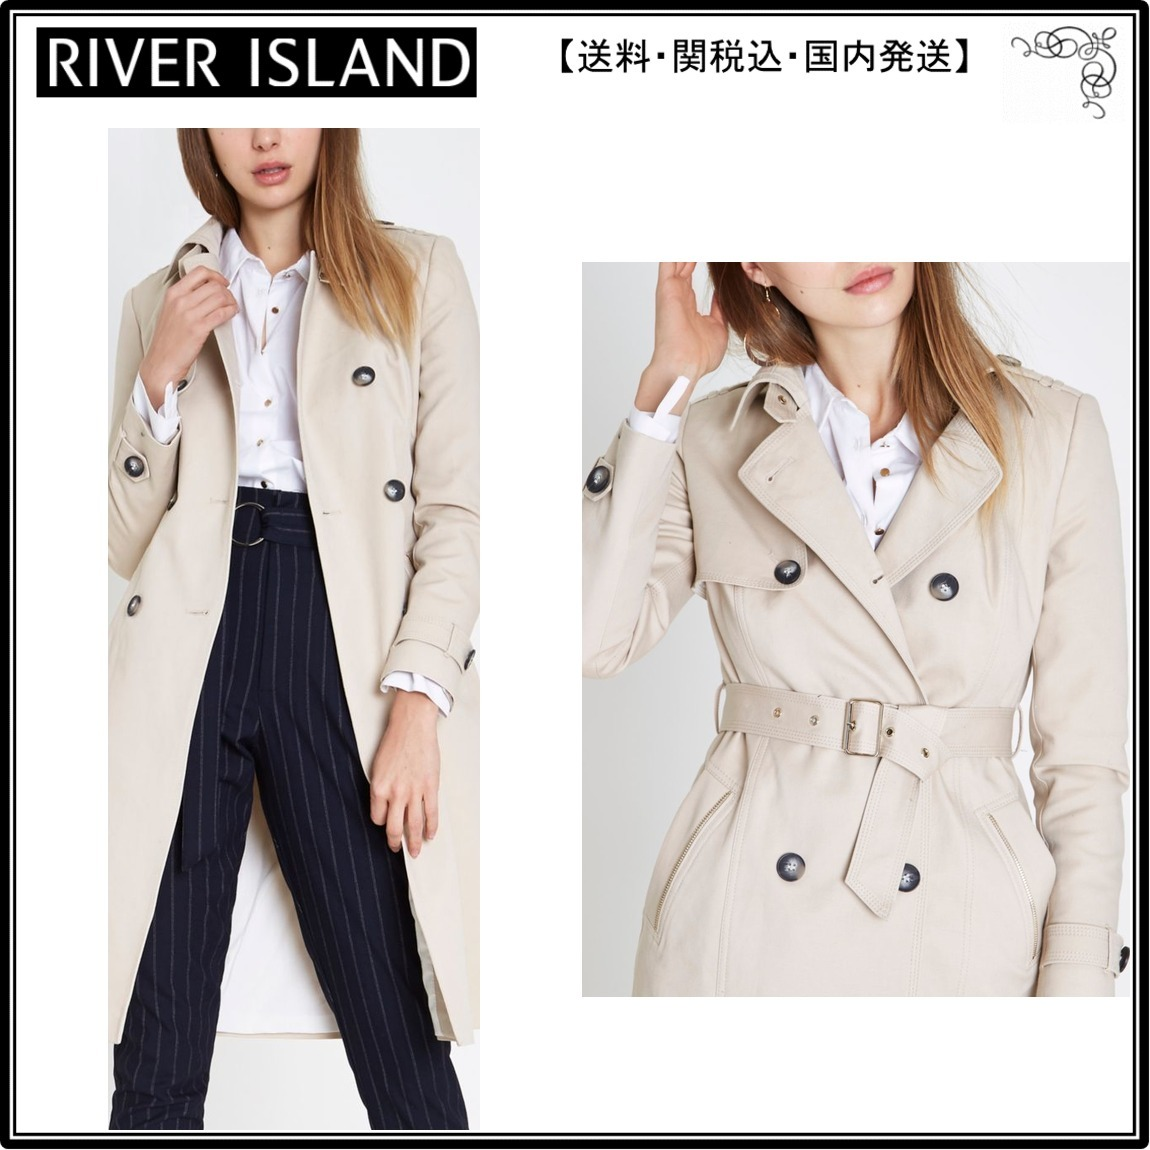 【海外限定】River Island トレンチコート☆Cream belted trench